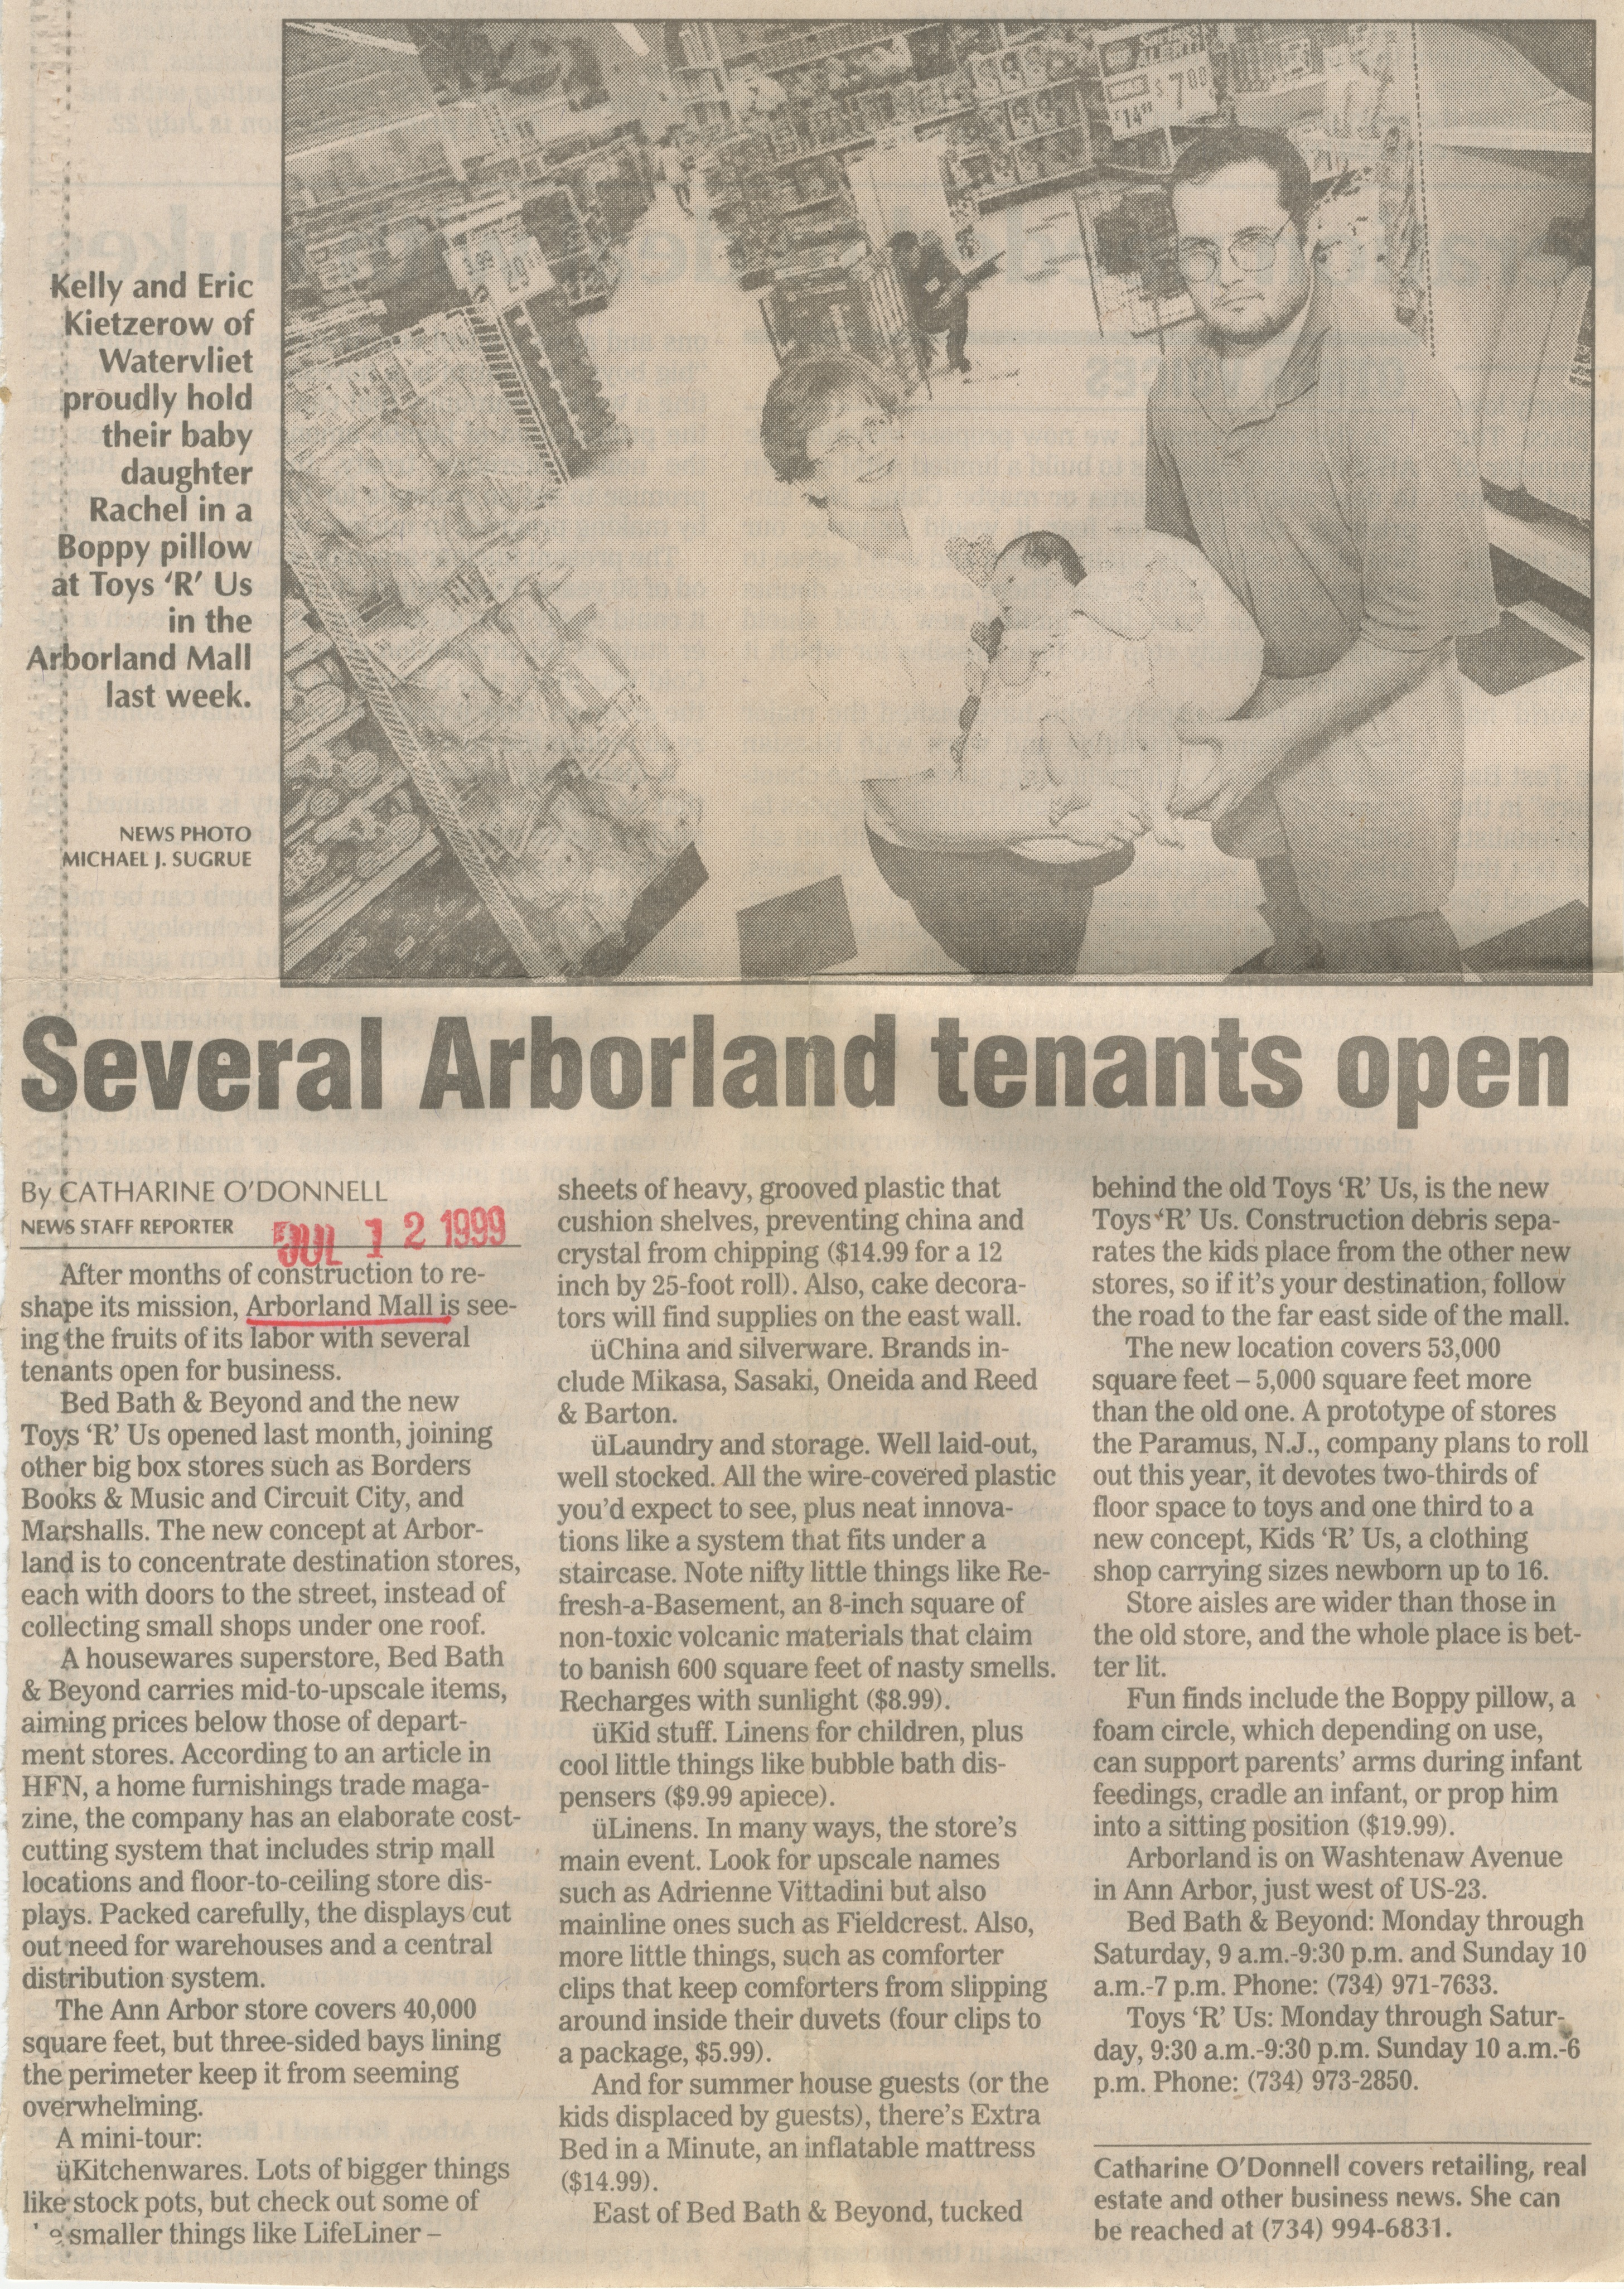 Several Arborland Tenants Open image